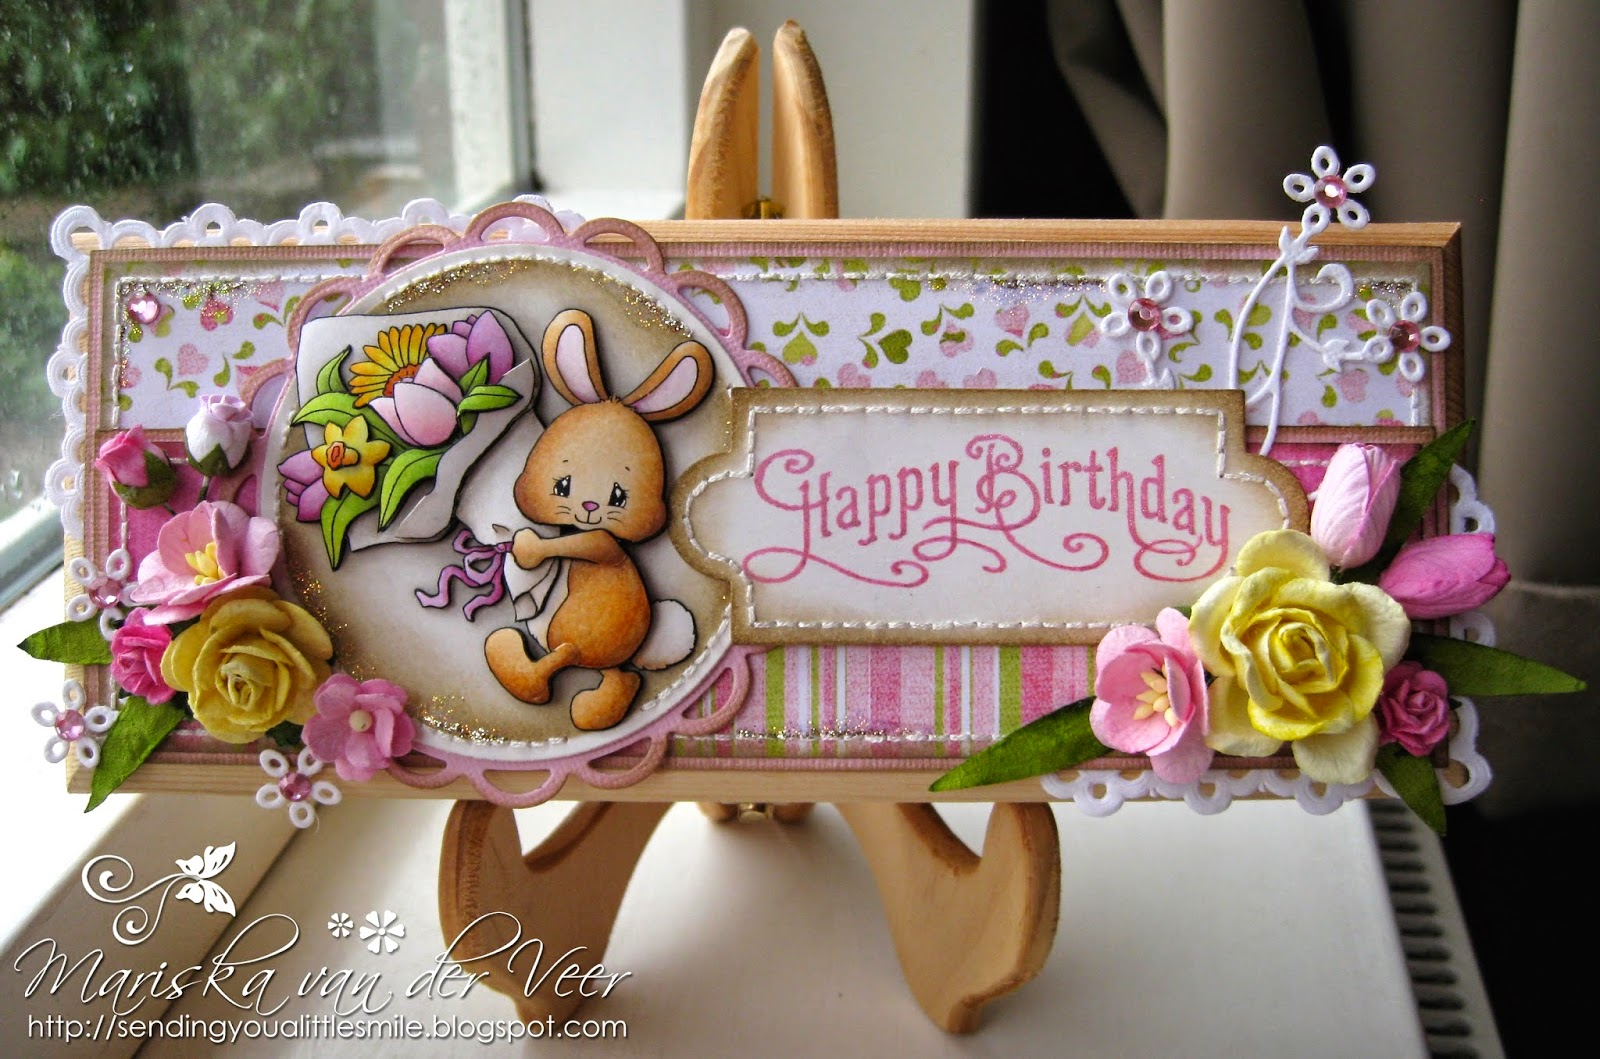 Sending You A Little Smile Bunny With Flowers On A Birthday Gift Box